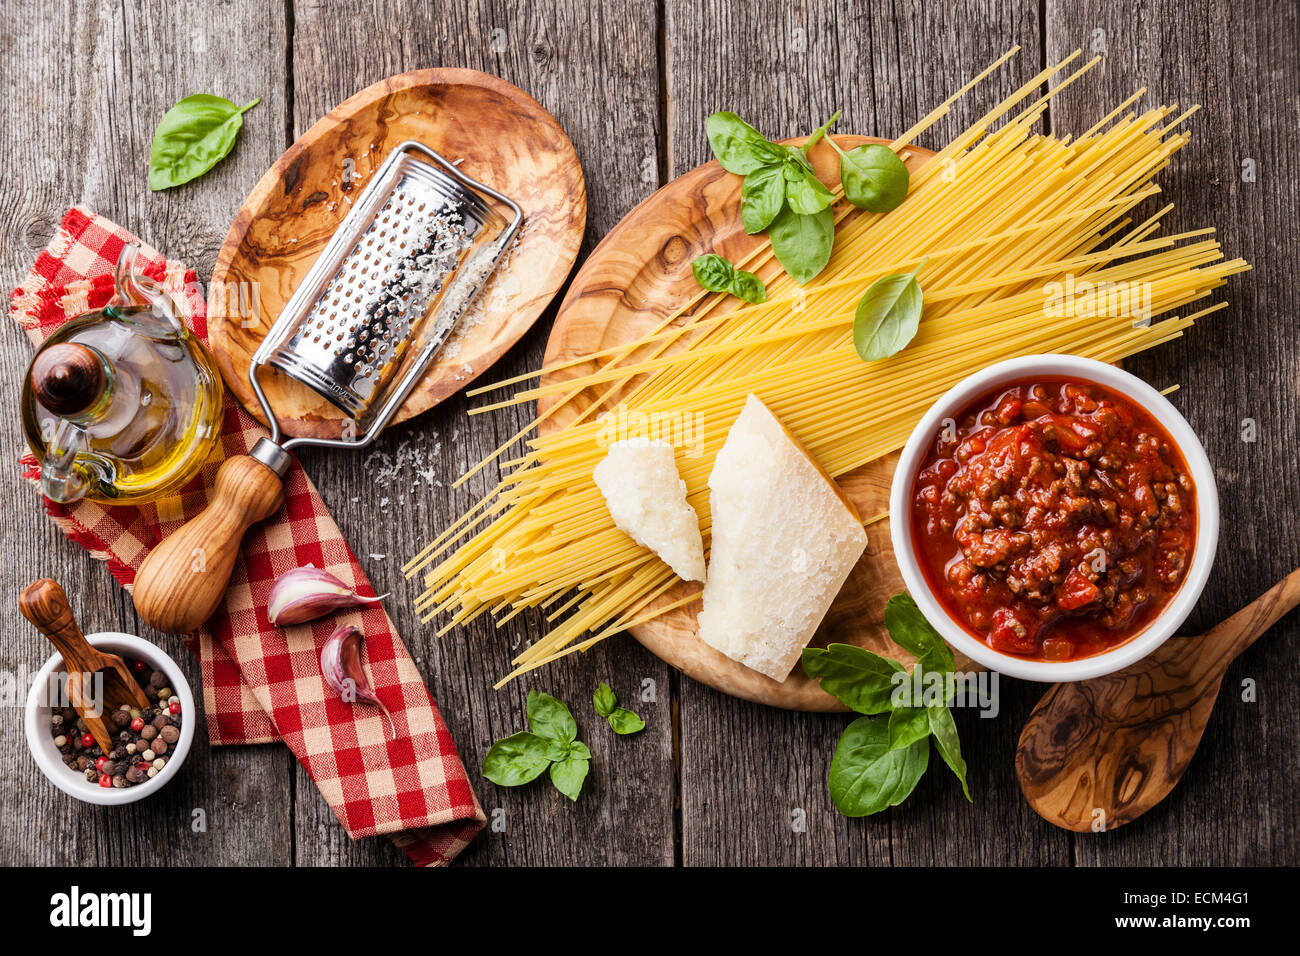 Ingredients for spaghetti bolognese on gray wooden background - Stock Image